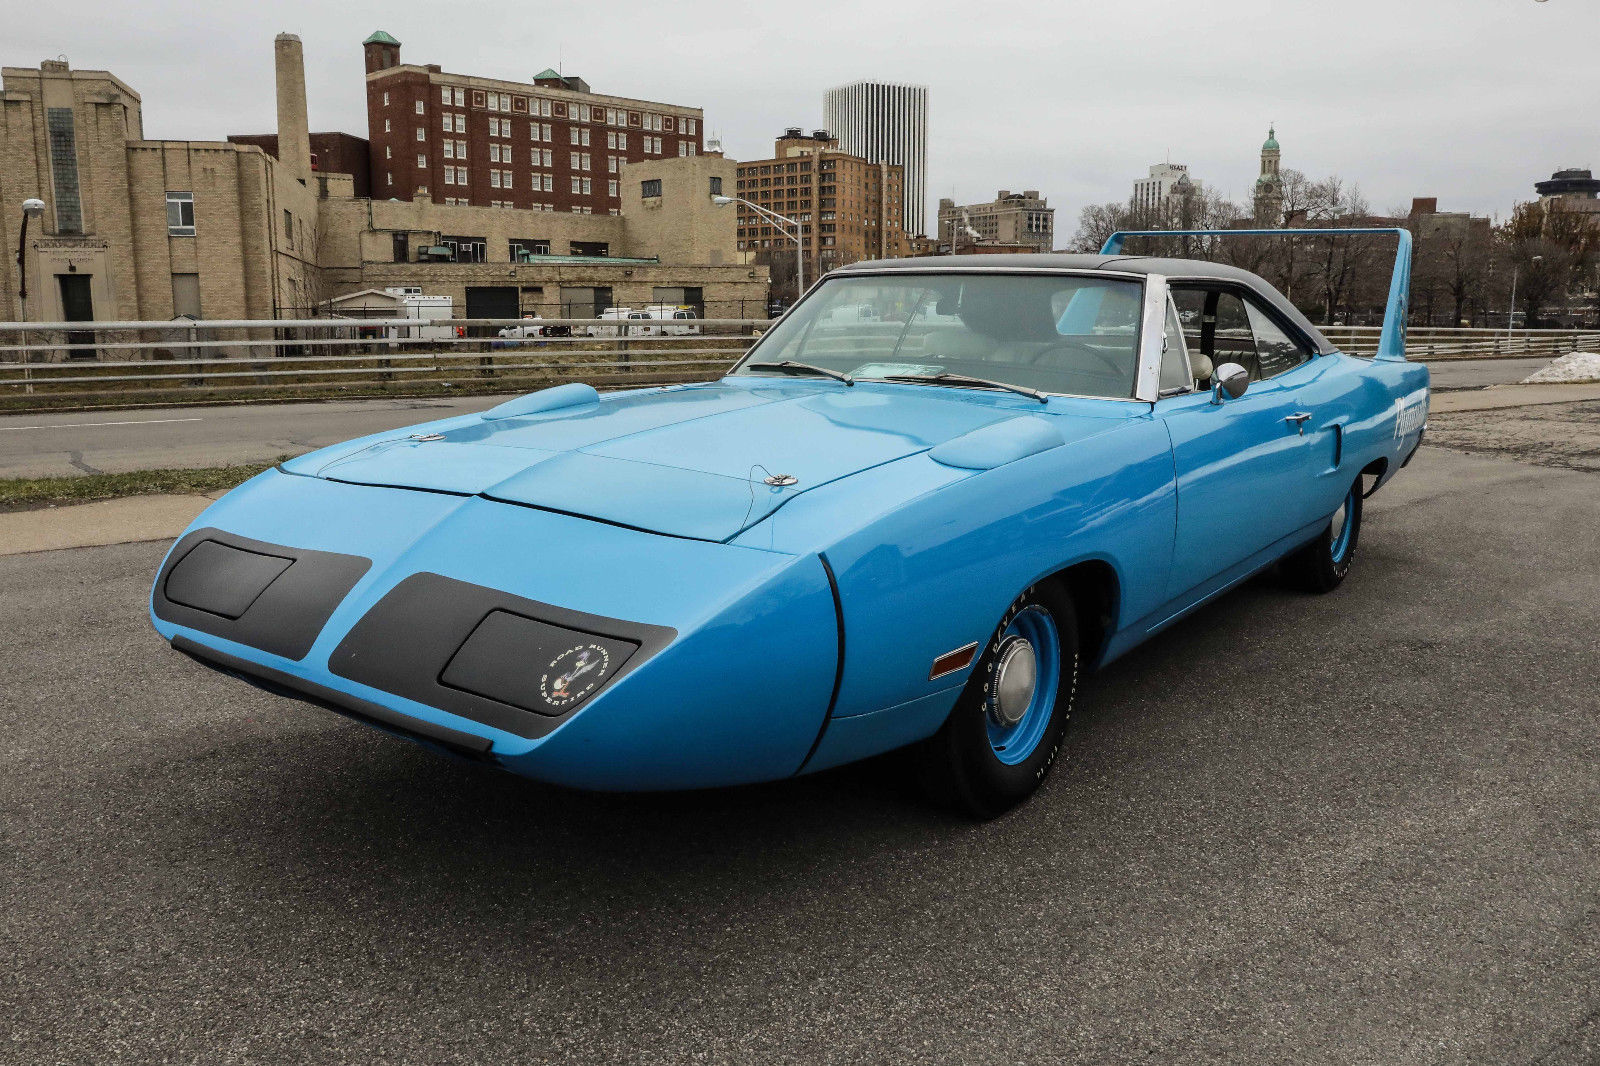 Plymouth Superbird Project Car For Sale